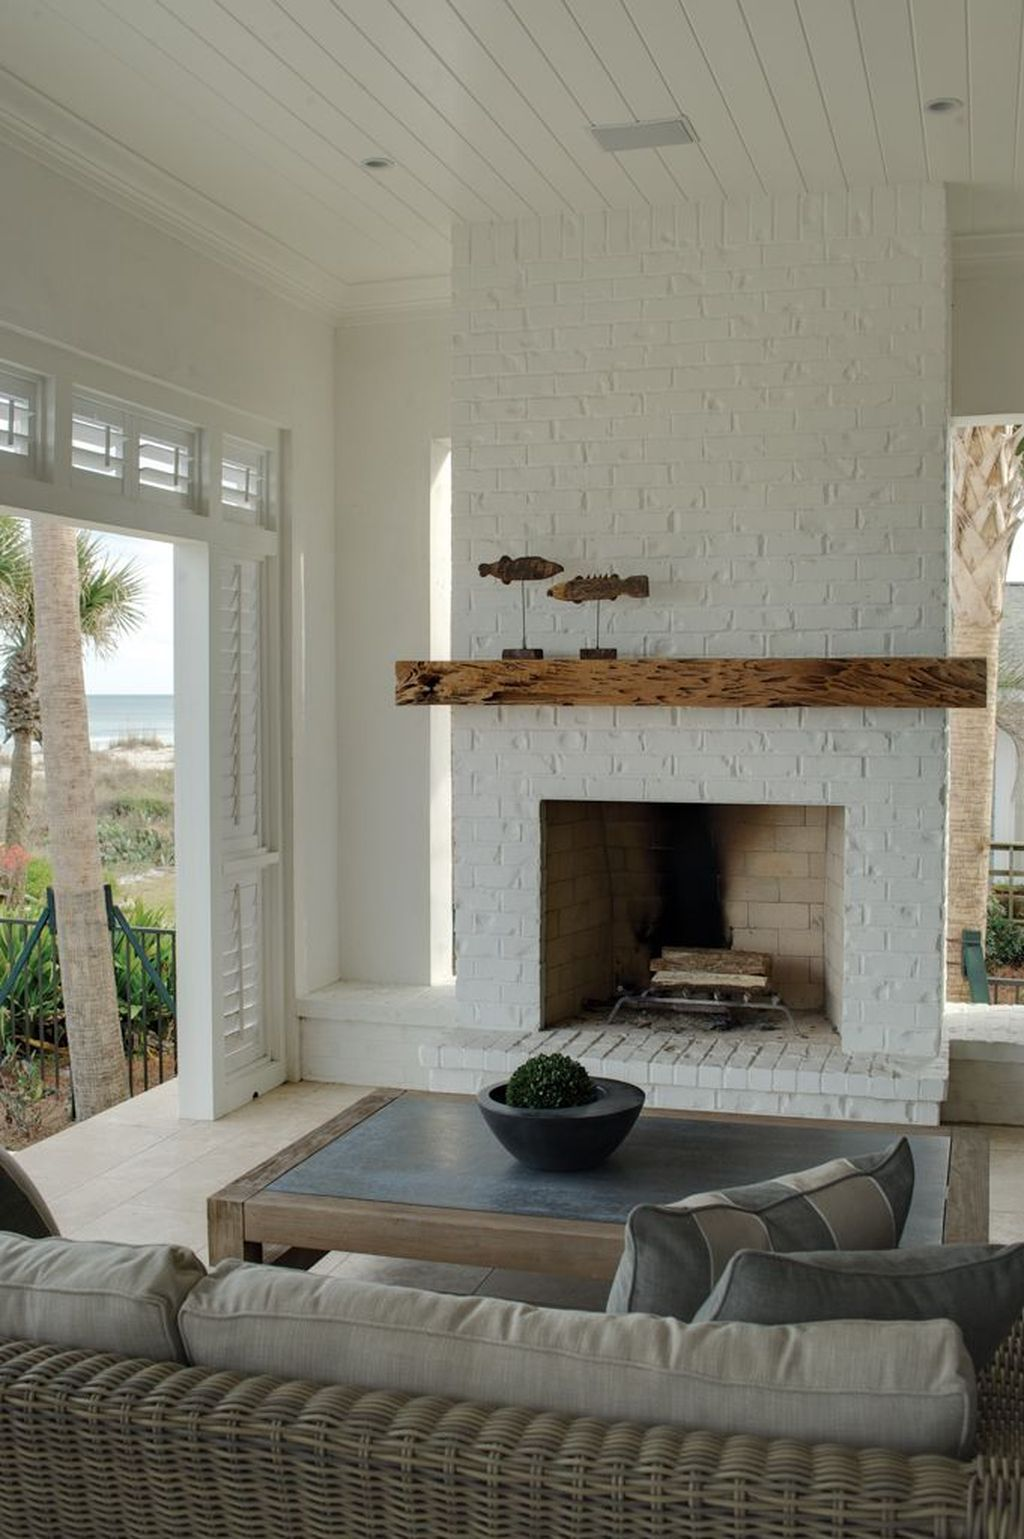 43 Rustic Brick Fireplace Living Rooms Decorations Ideas #whitebrickfireplace